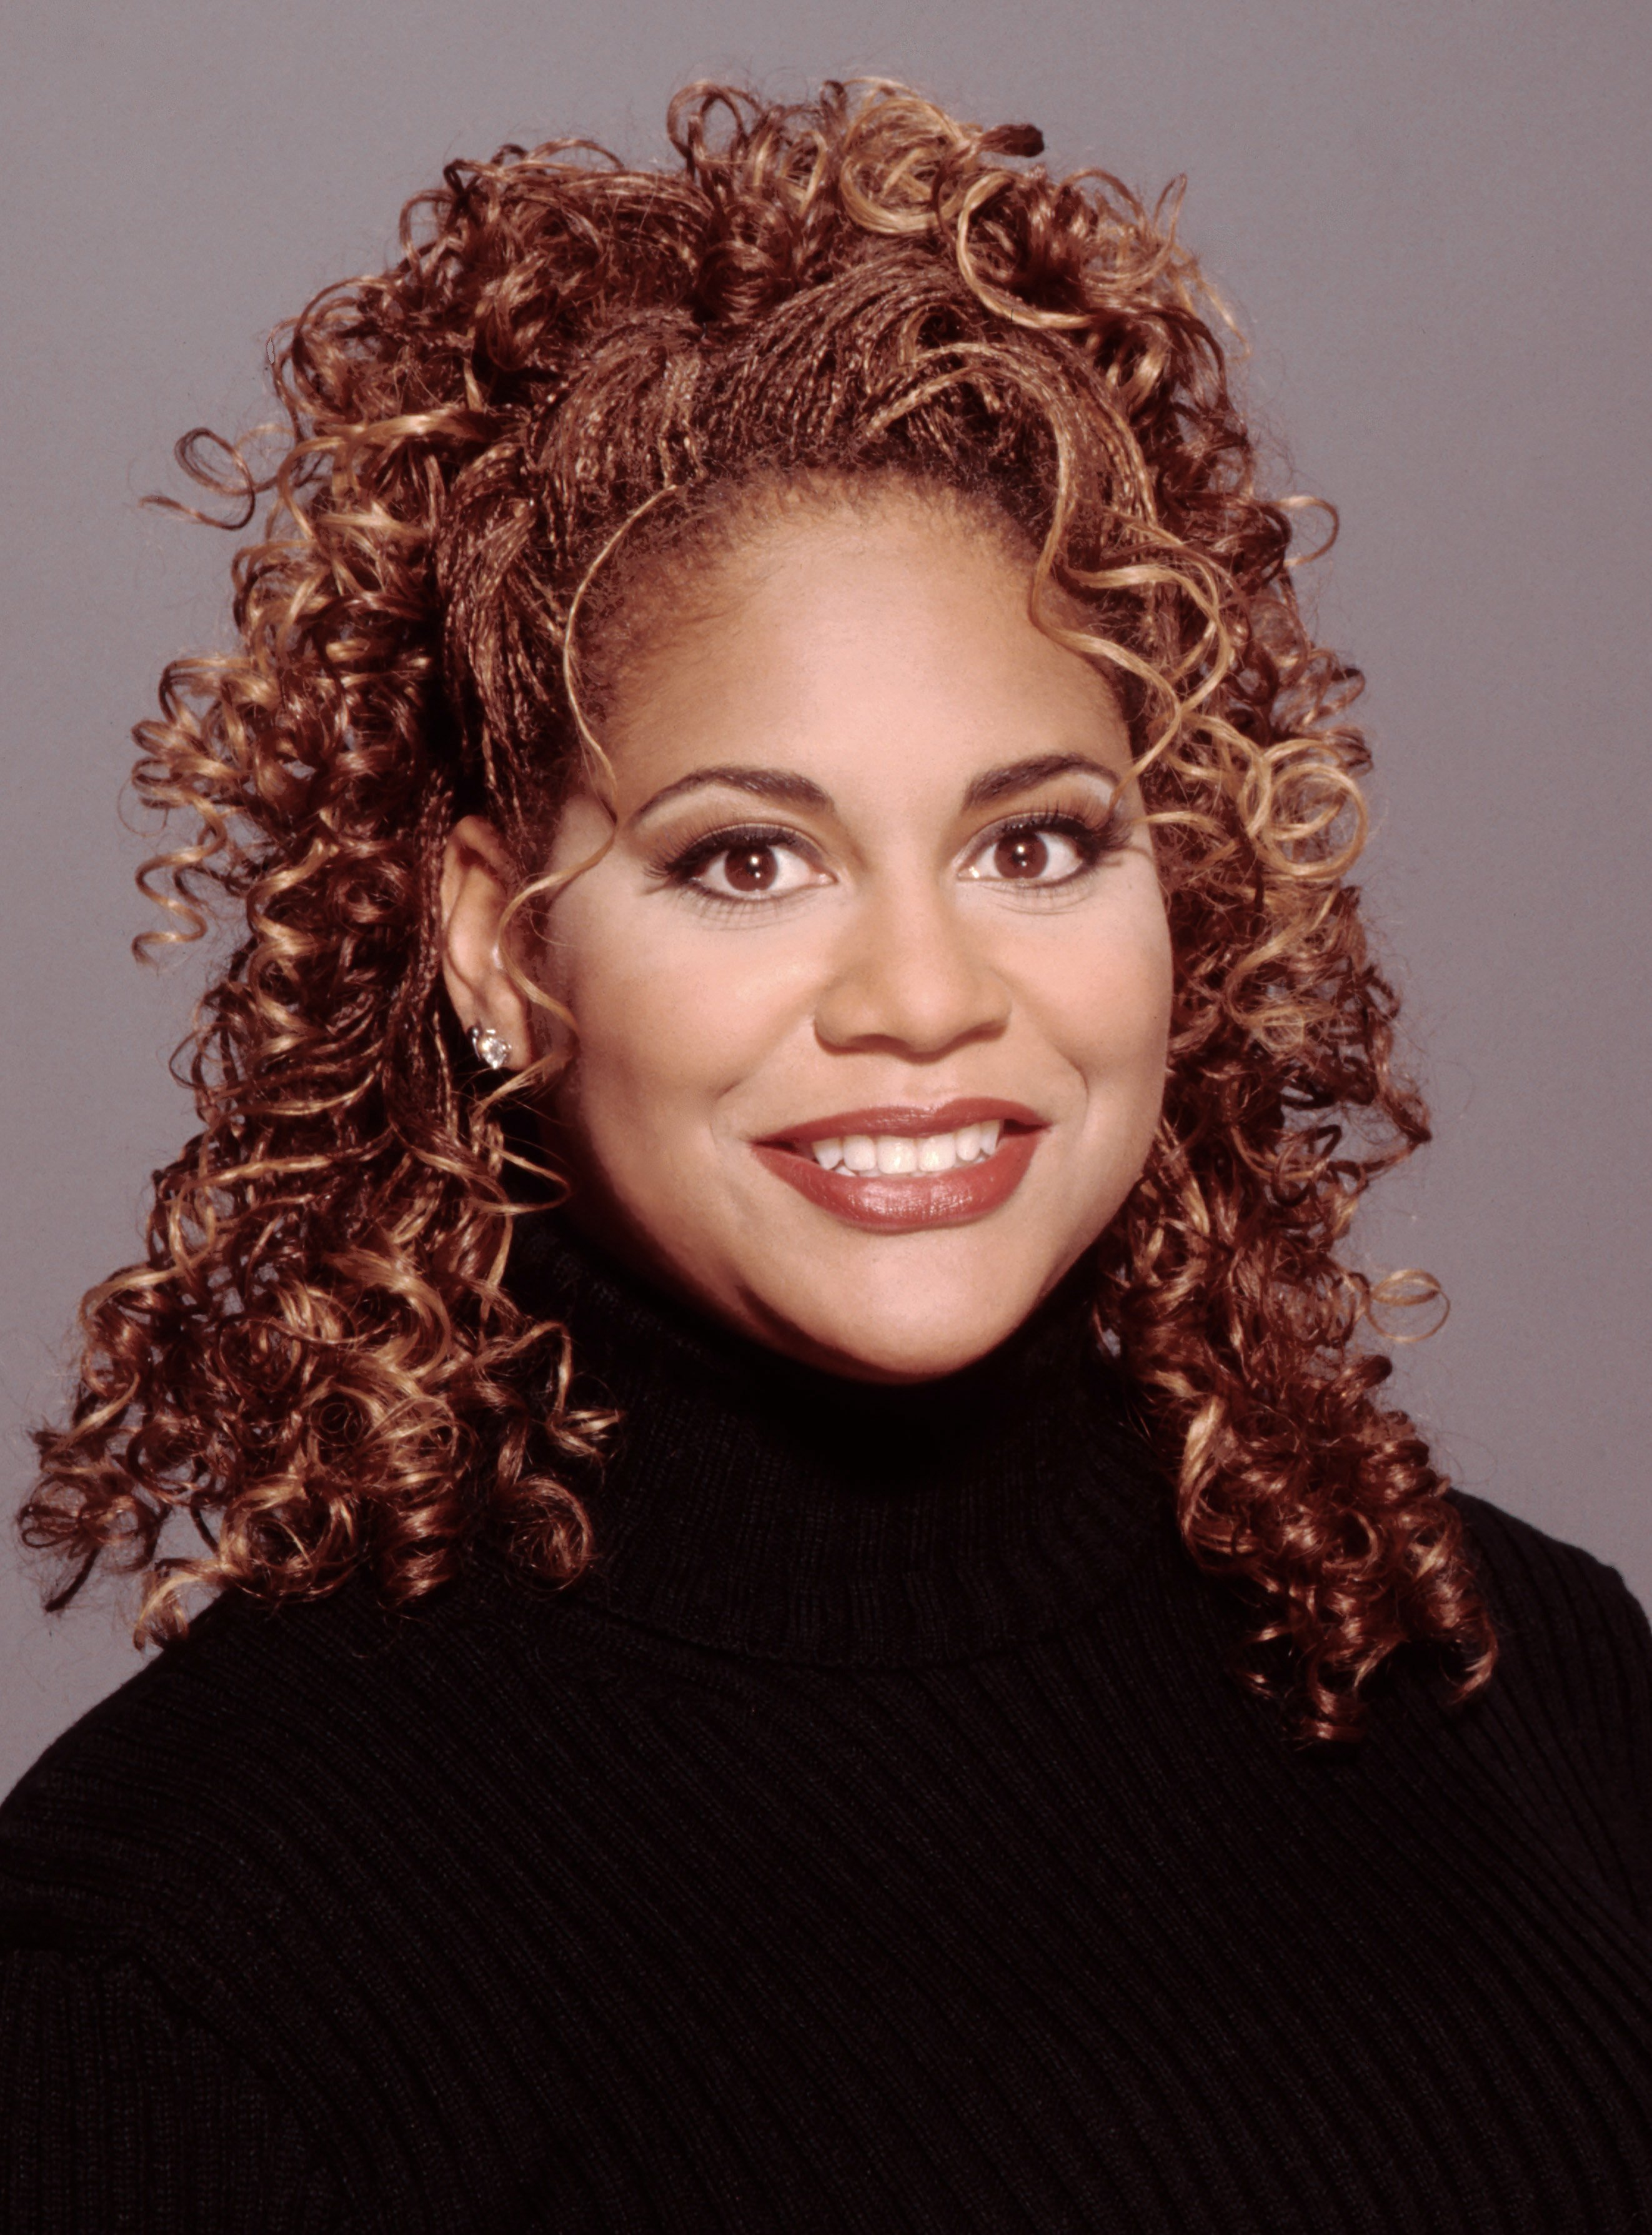 Actress Kim Coles poses for a portrait in 1997 in Los Angeles, California.   Photo by Harry Langdon/Getty Images